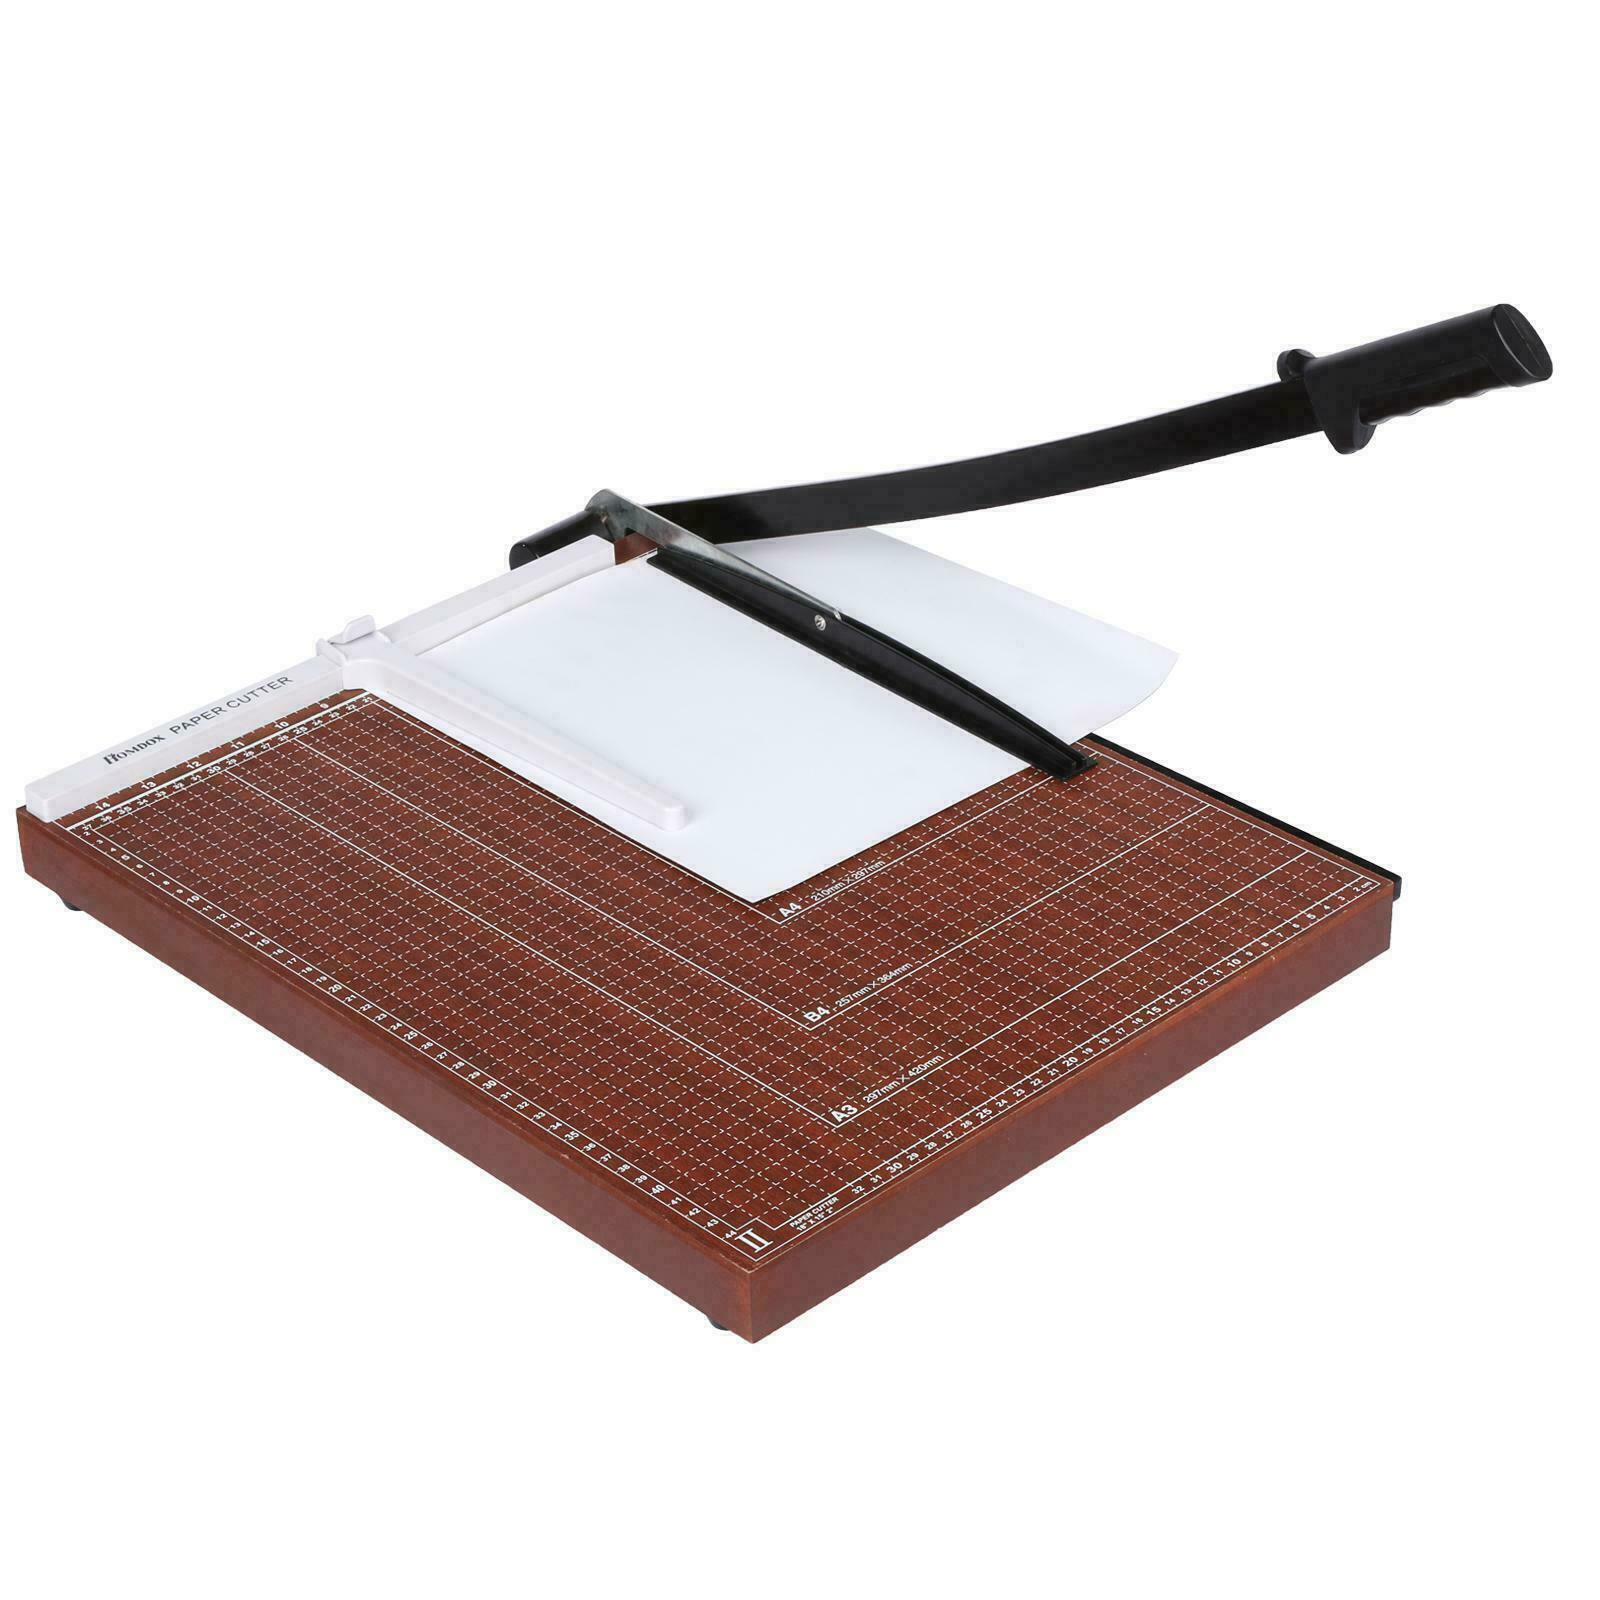 25 Inch A4 to B7 Heavy Duty Guillotine Paper Cutter Photo Tr